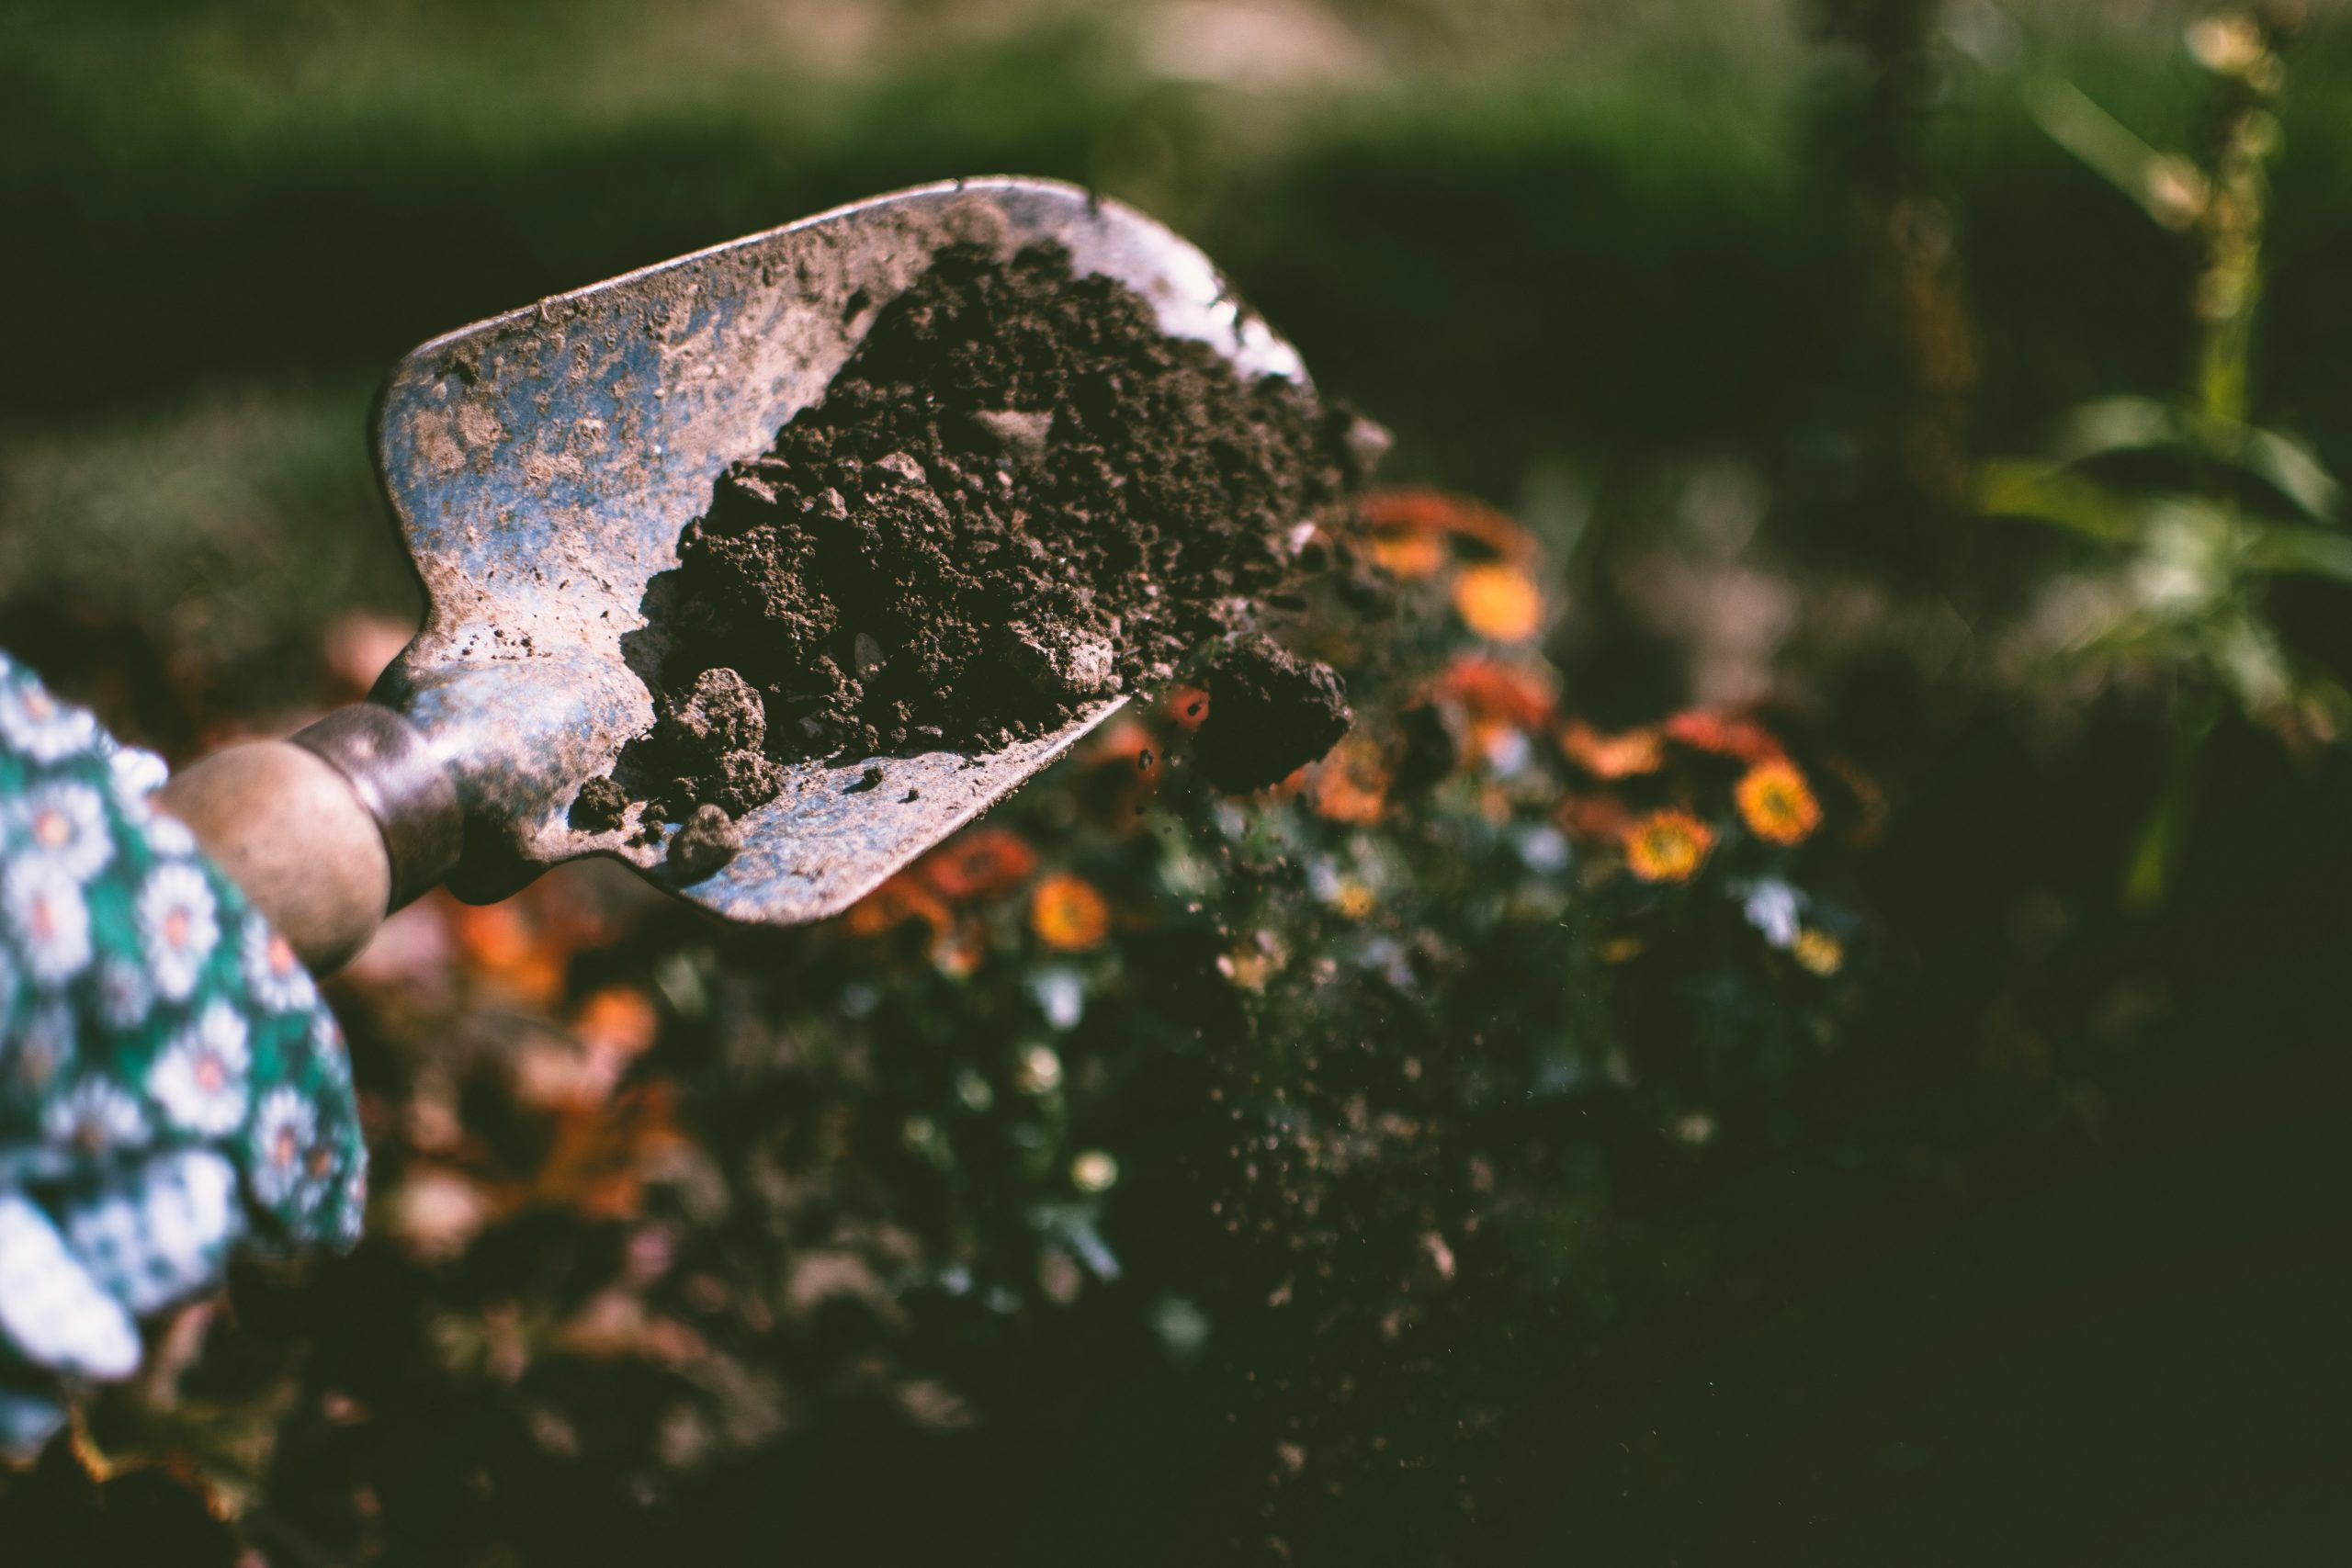 Ways Your Health Can Benefit from Gardening